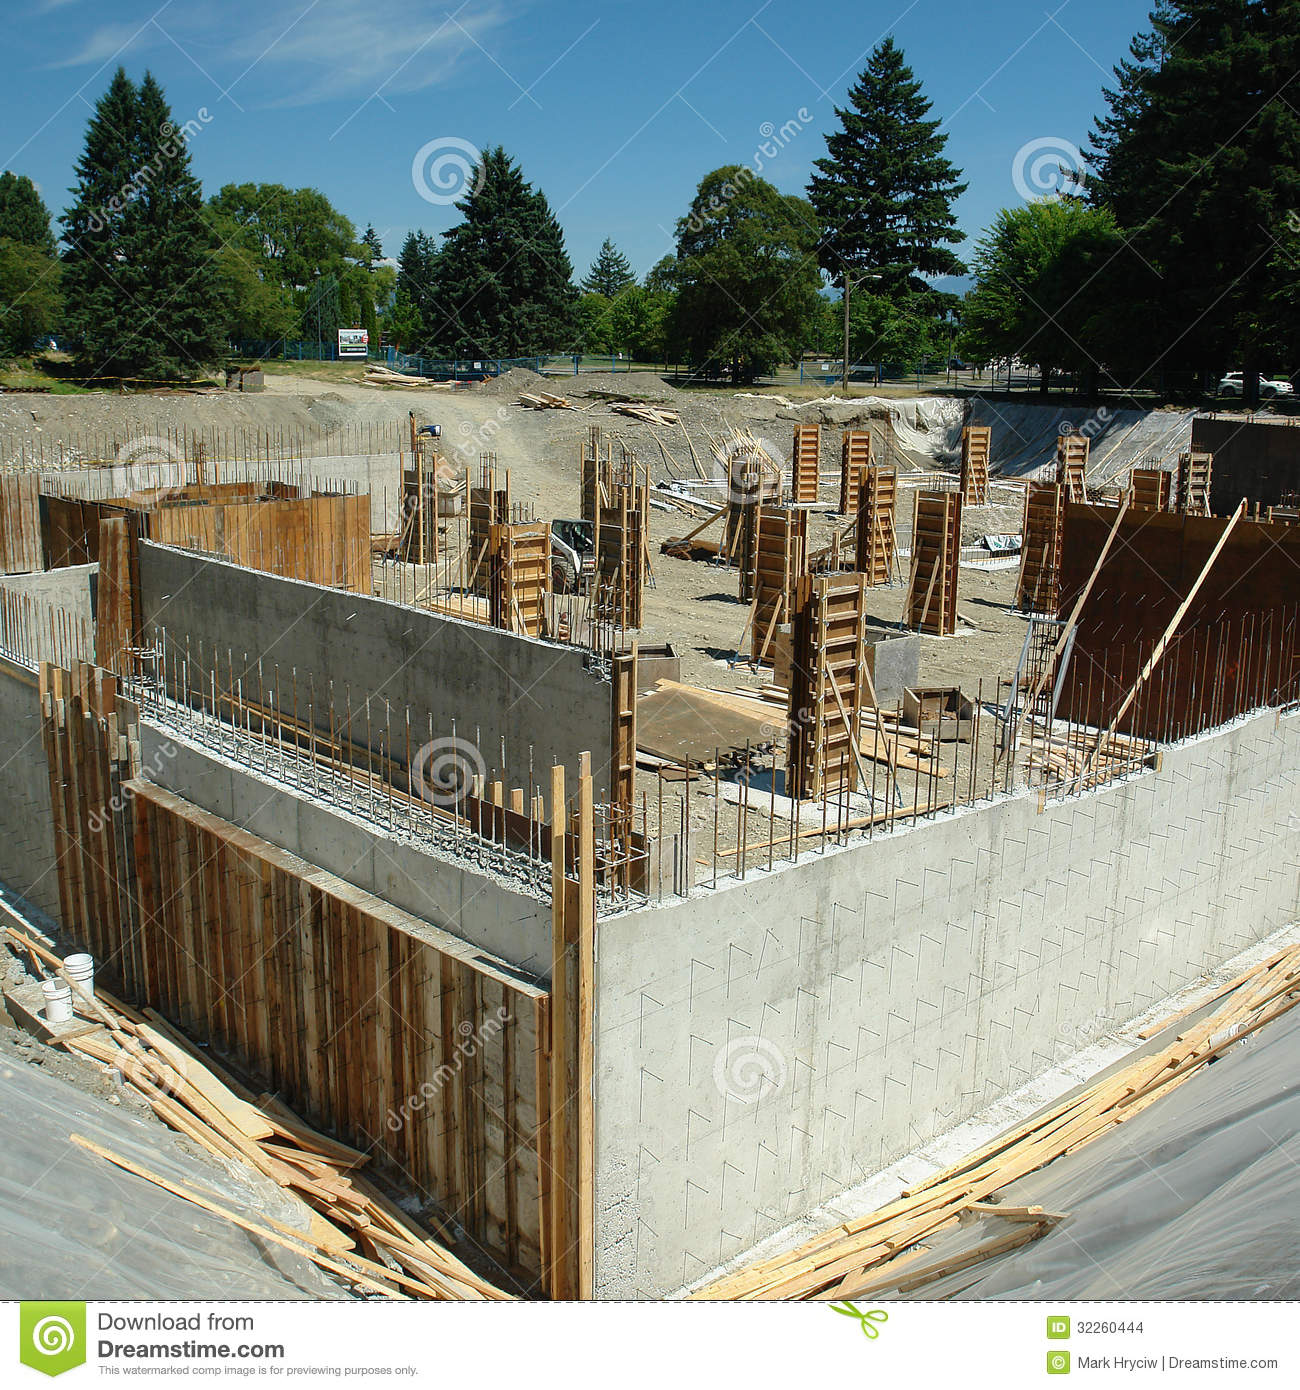 Construction site stock photo image of rebar under for What is the cost of building a house in india